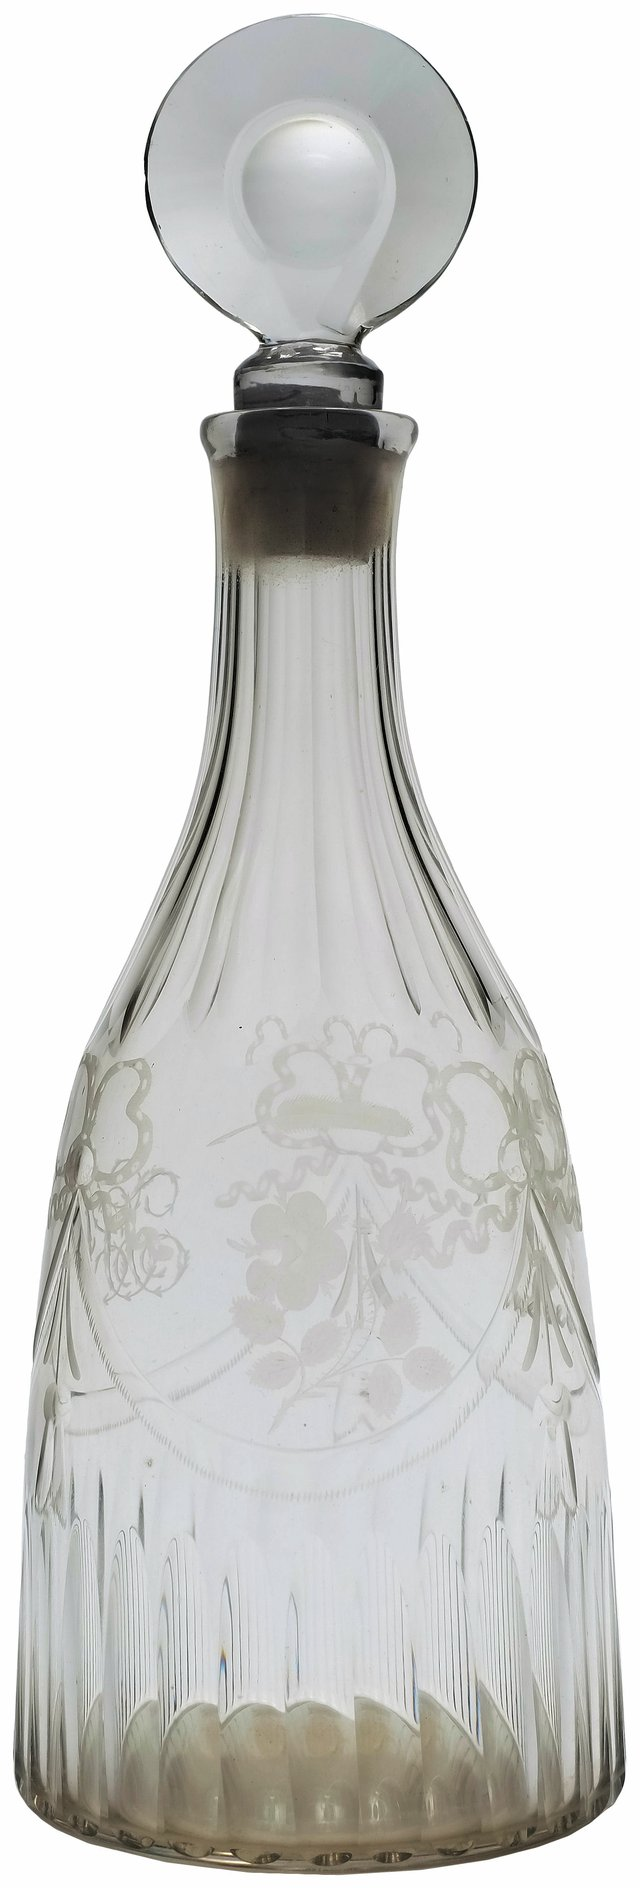 Waterford decanter & stopper